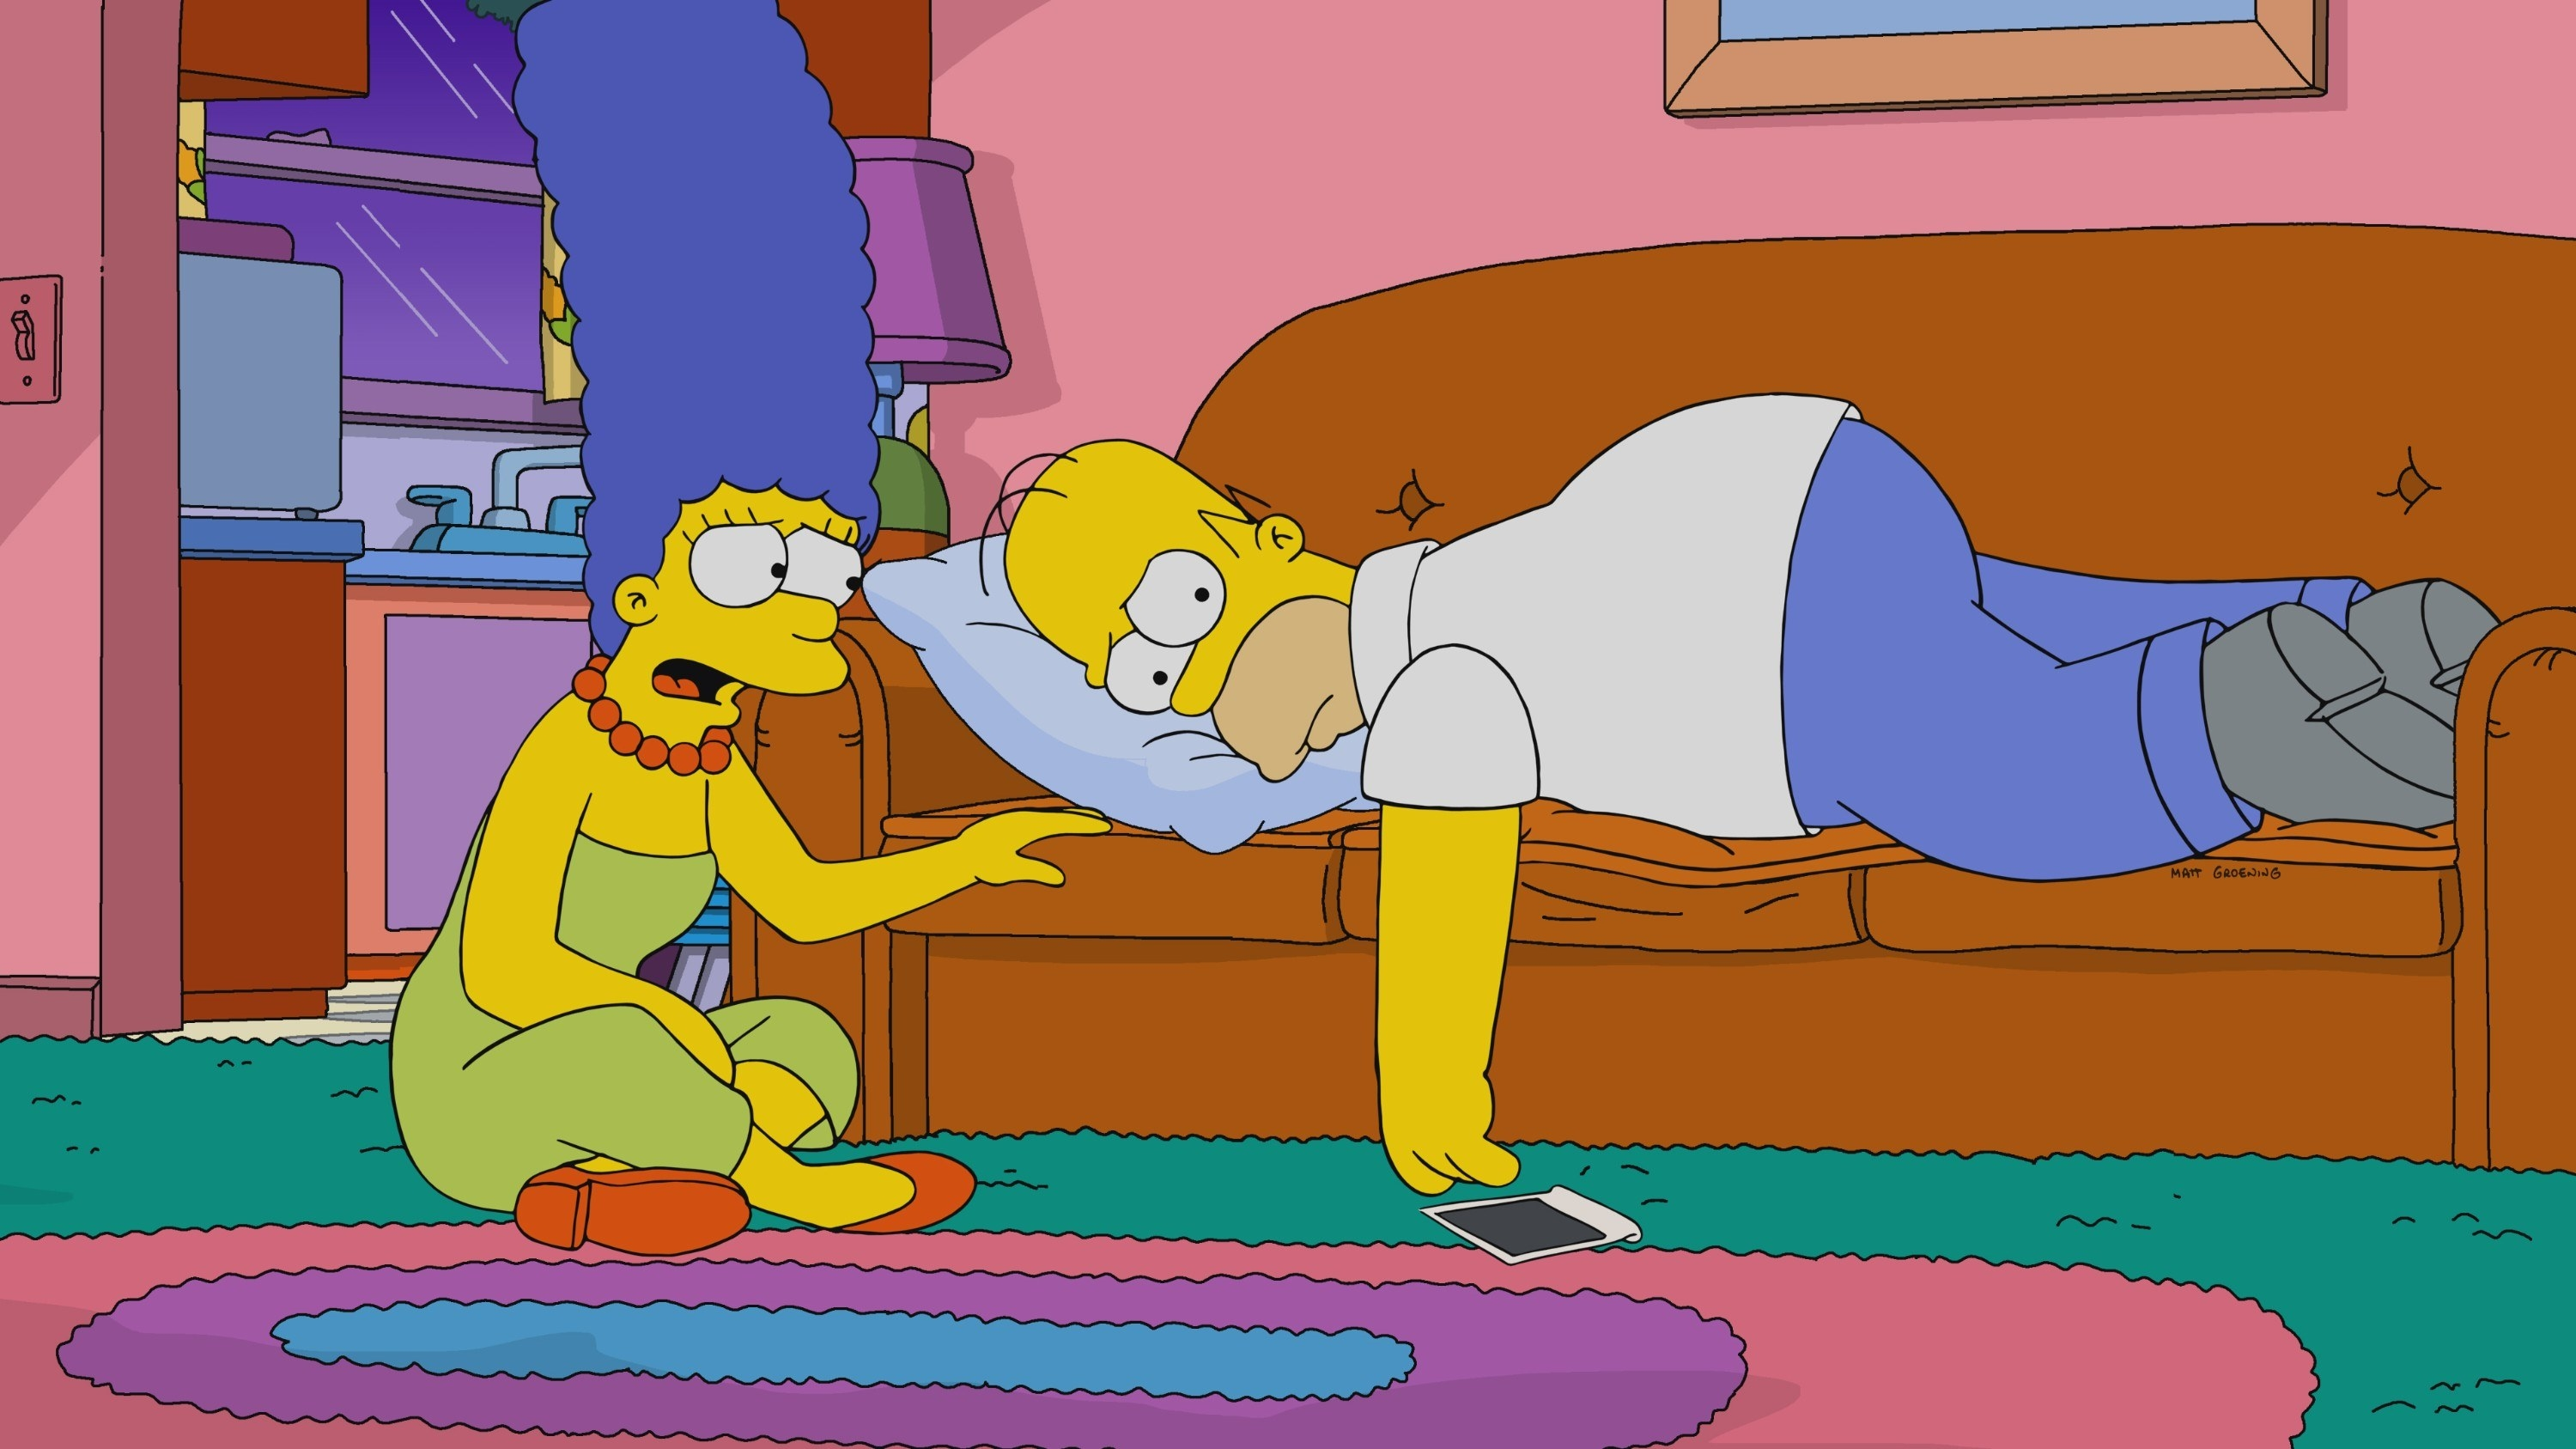 Homer and Marge looking unhappy